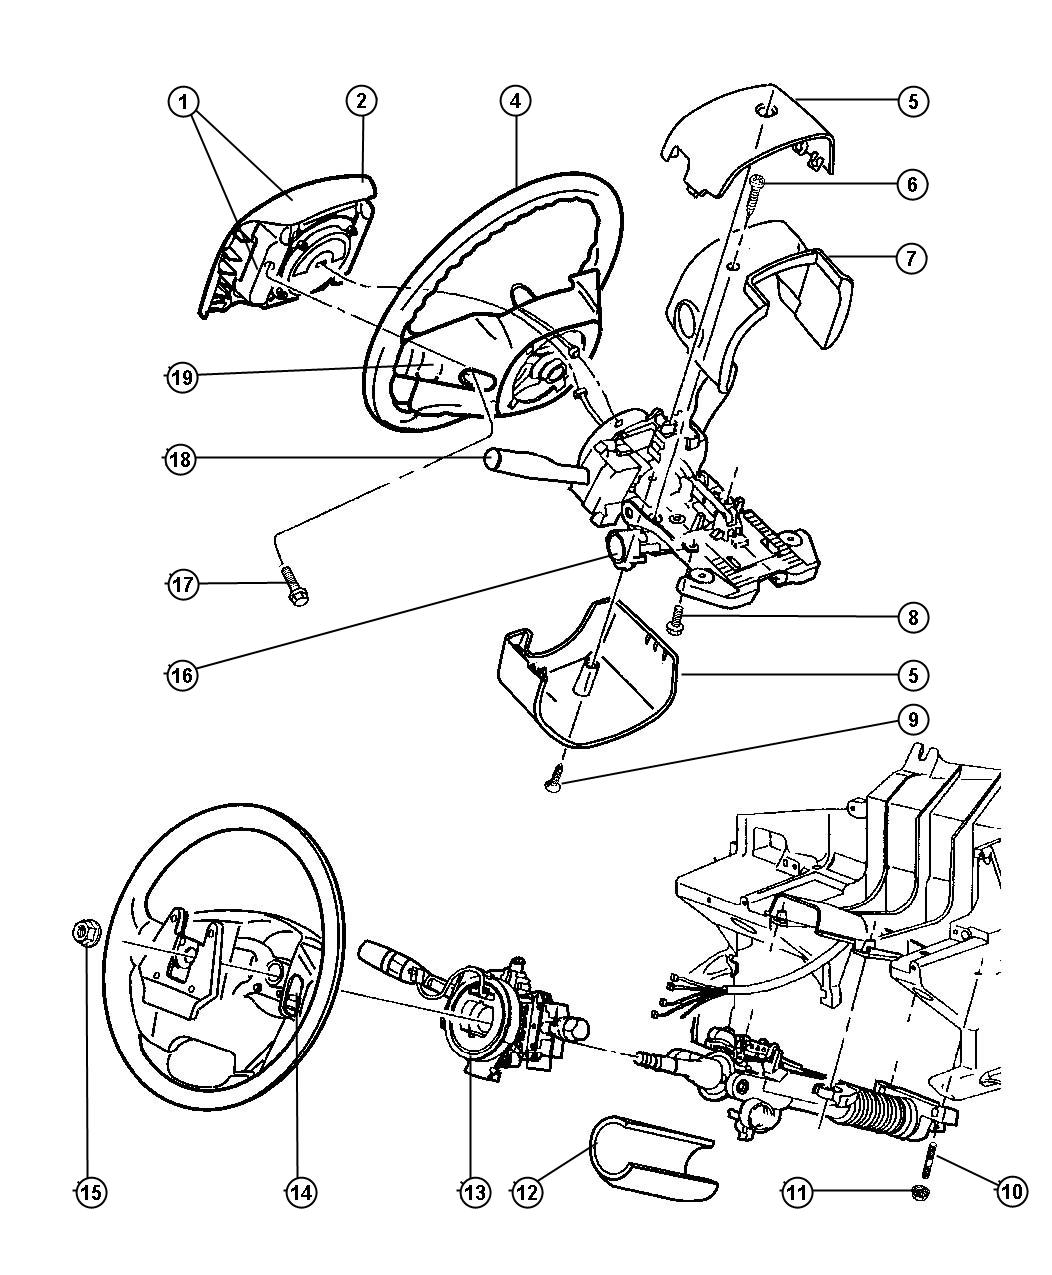 99 Jeep Cherokee Sport Engine Diagram Wiring Schematic 2019 1999 Grand Download For